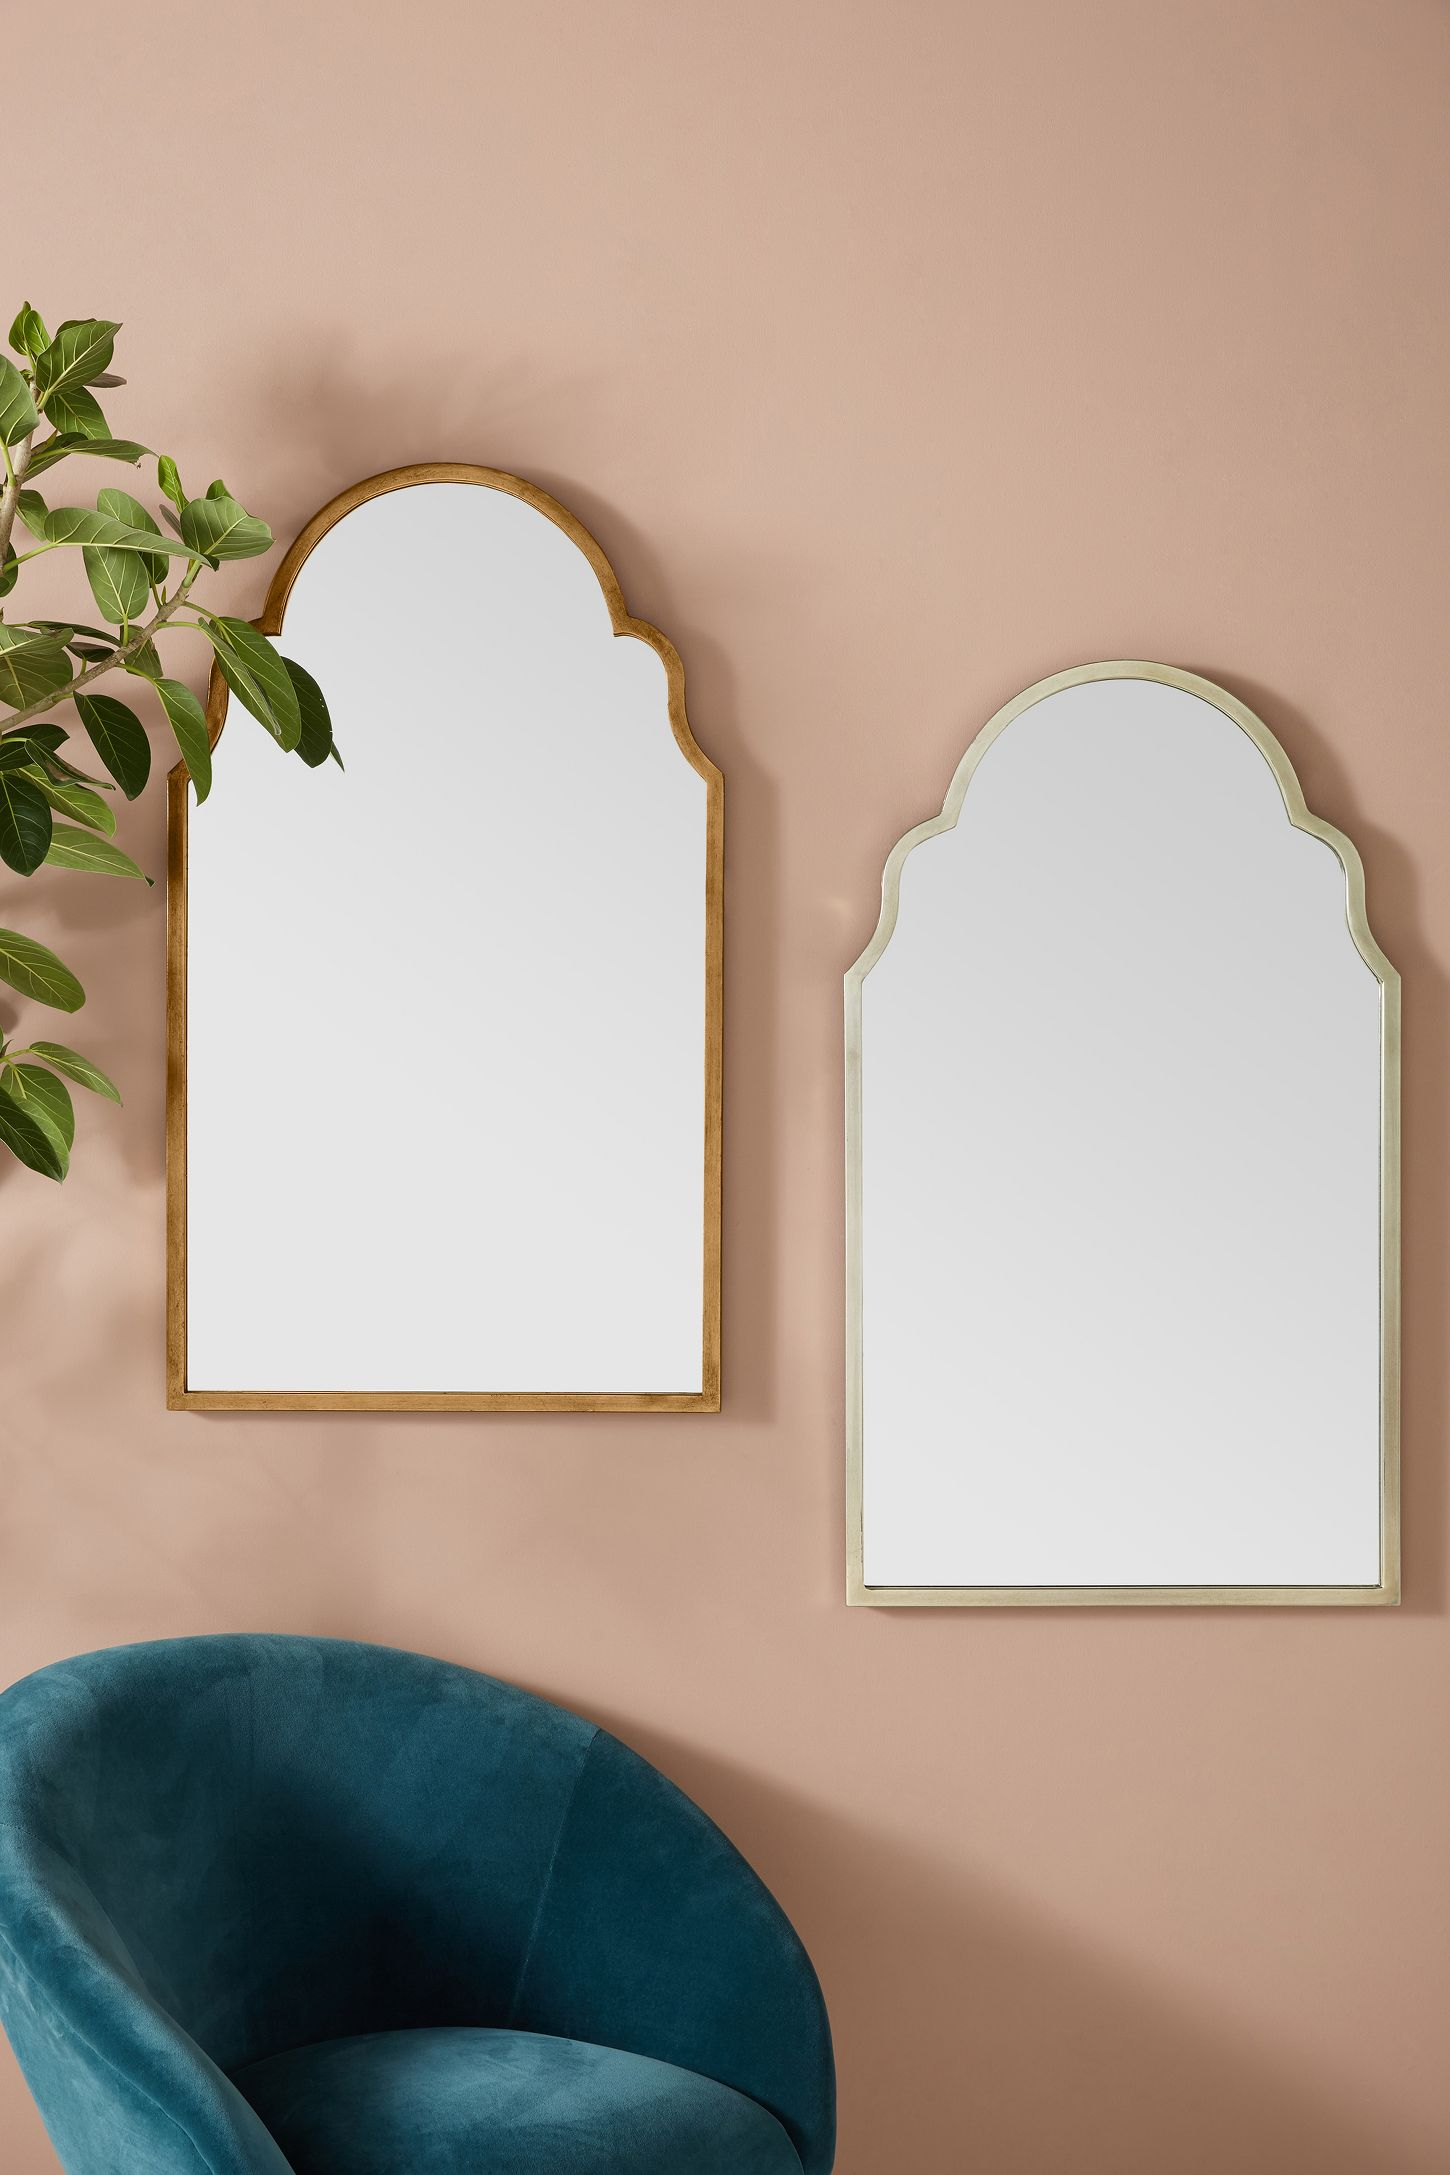 decorative mirrors online frame modern livingroom india big ireland room home in philippines the glamorous black for large engaging decor with mirror wall living